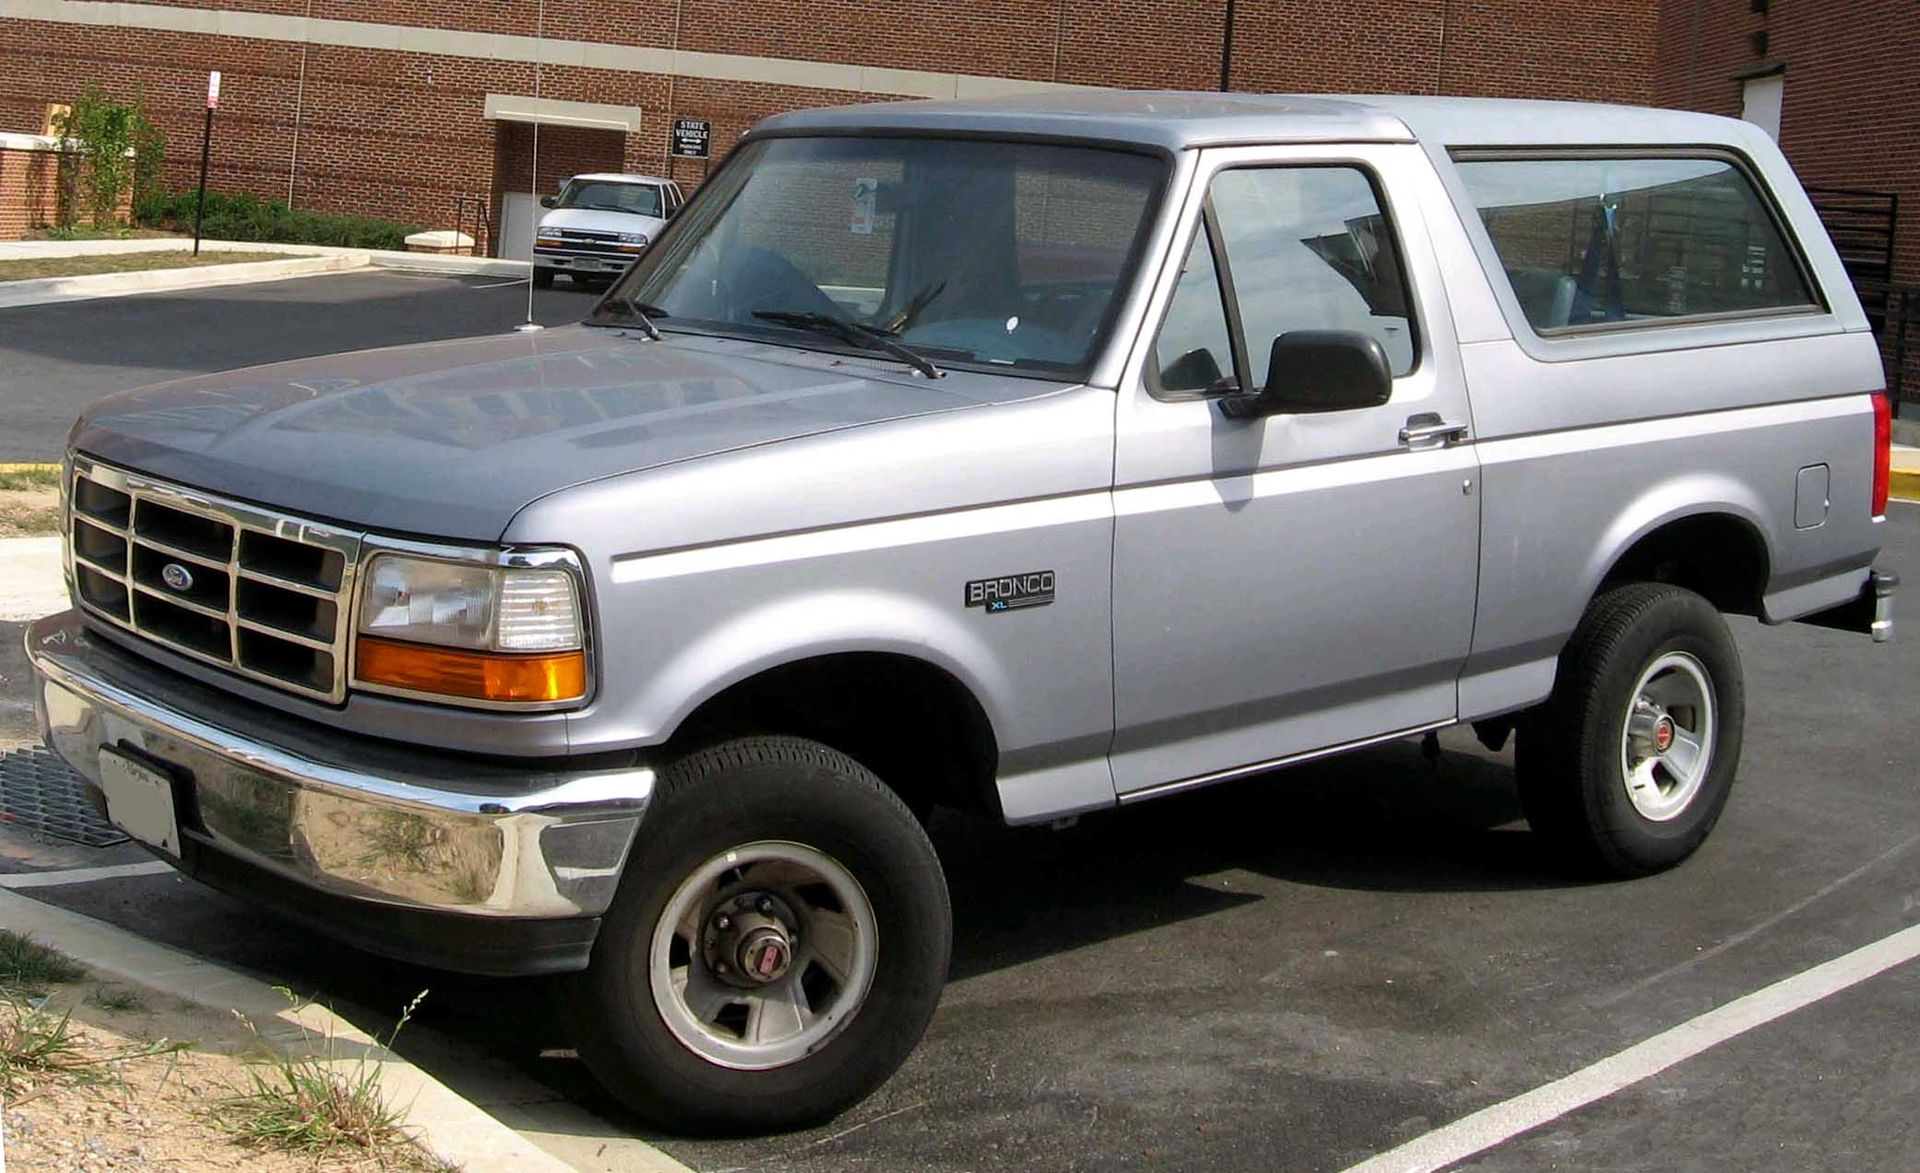 No Ford S Not Making A New Bronco Either The News Wheel